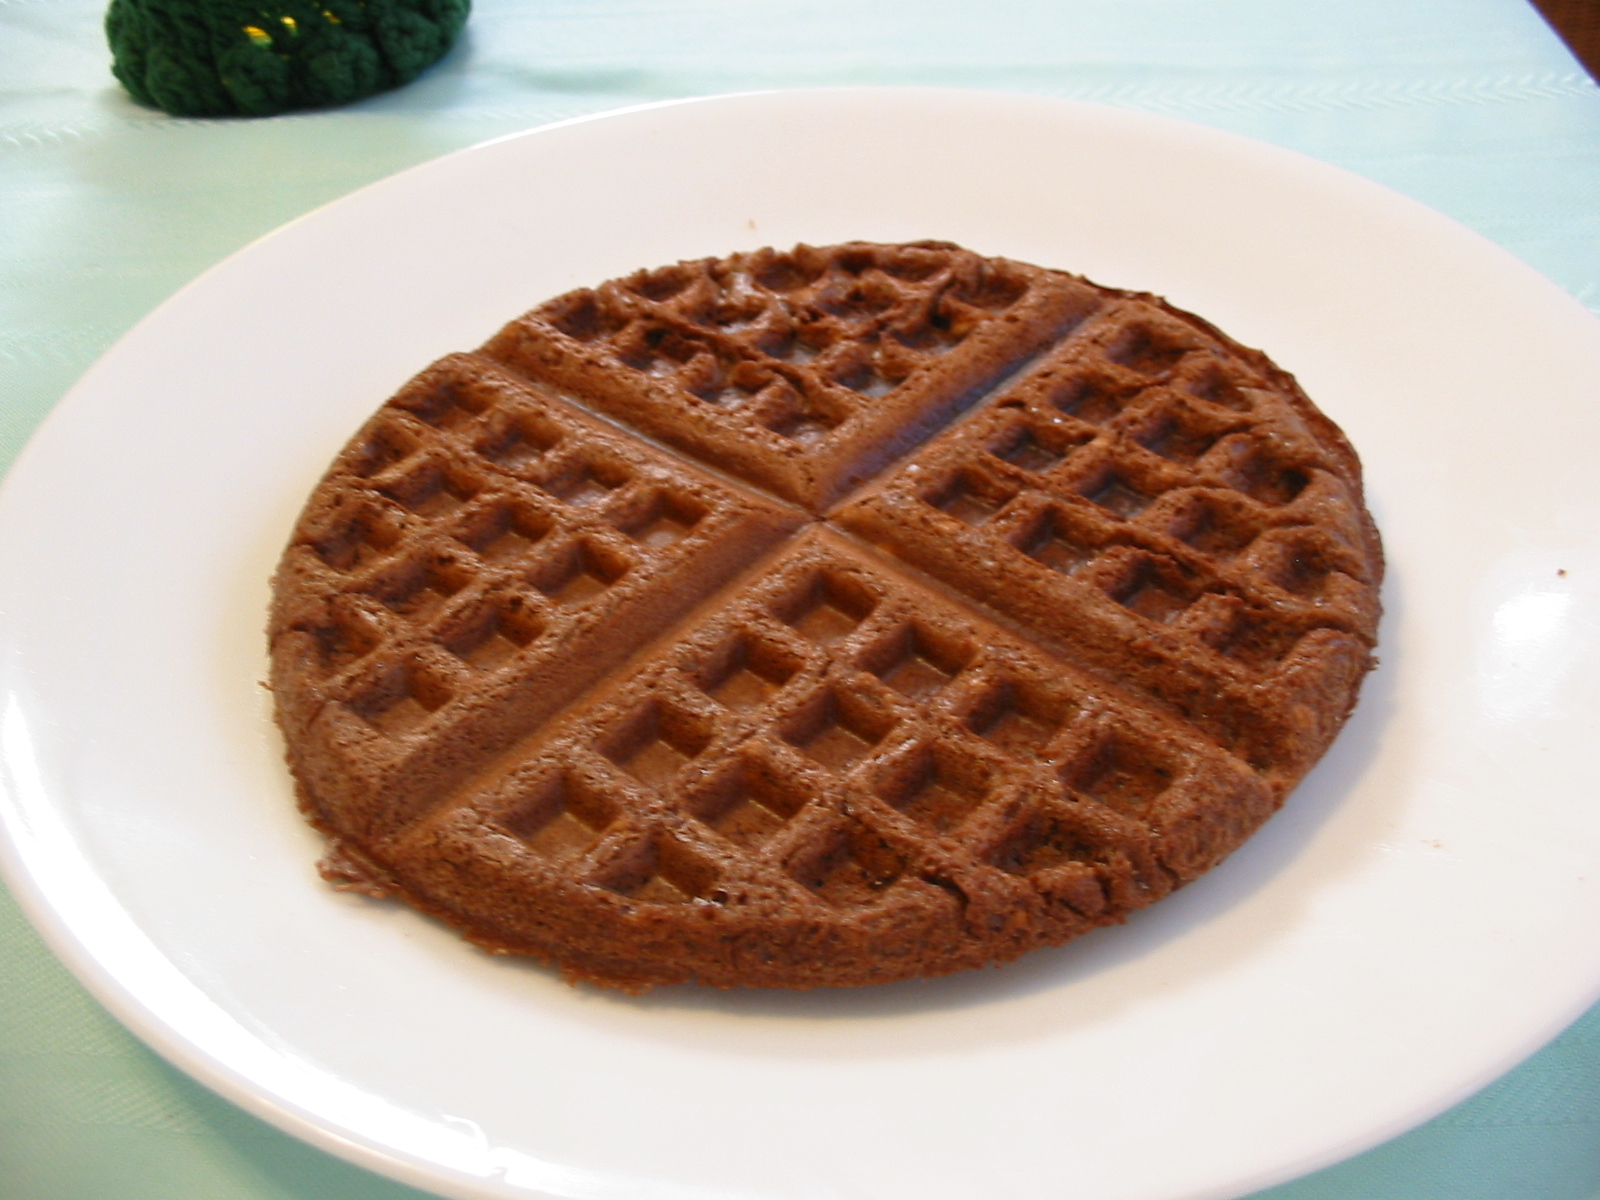 The Chocolate Cult: Simple Chocolate Waffles Recipe